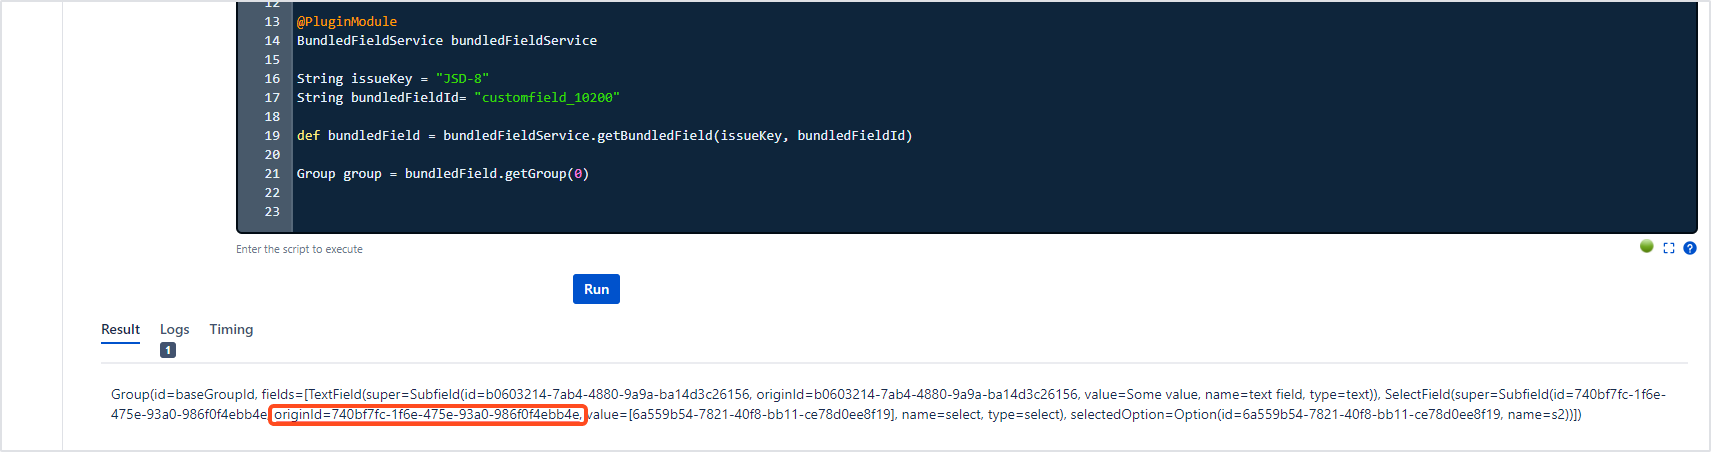 Bundled Fields Java API - Getting the originId from the ScriptRunner console